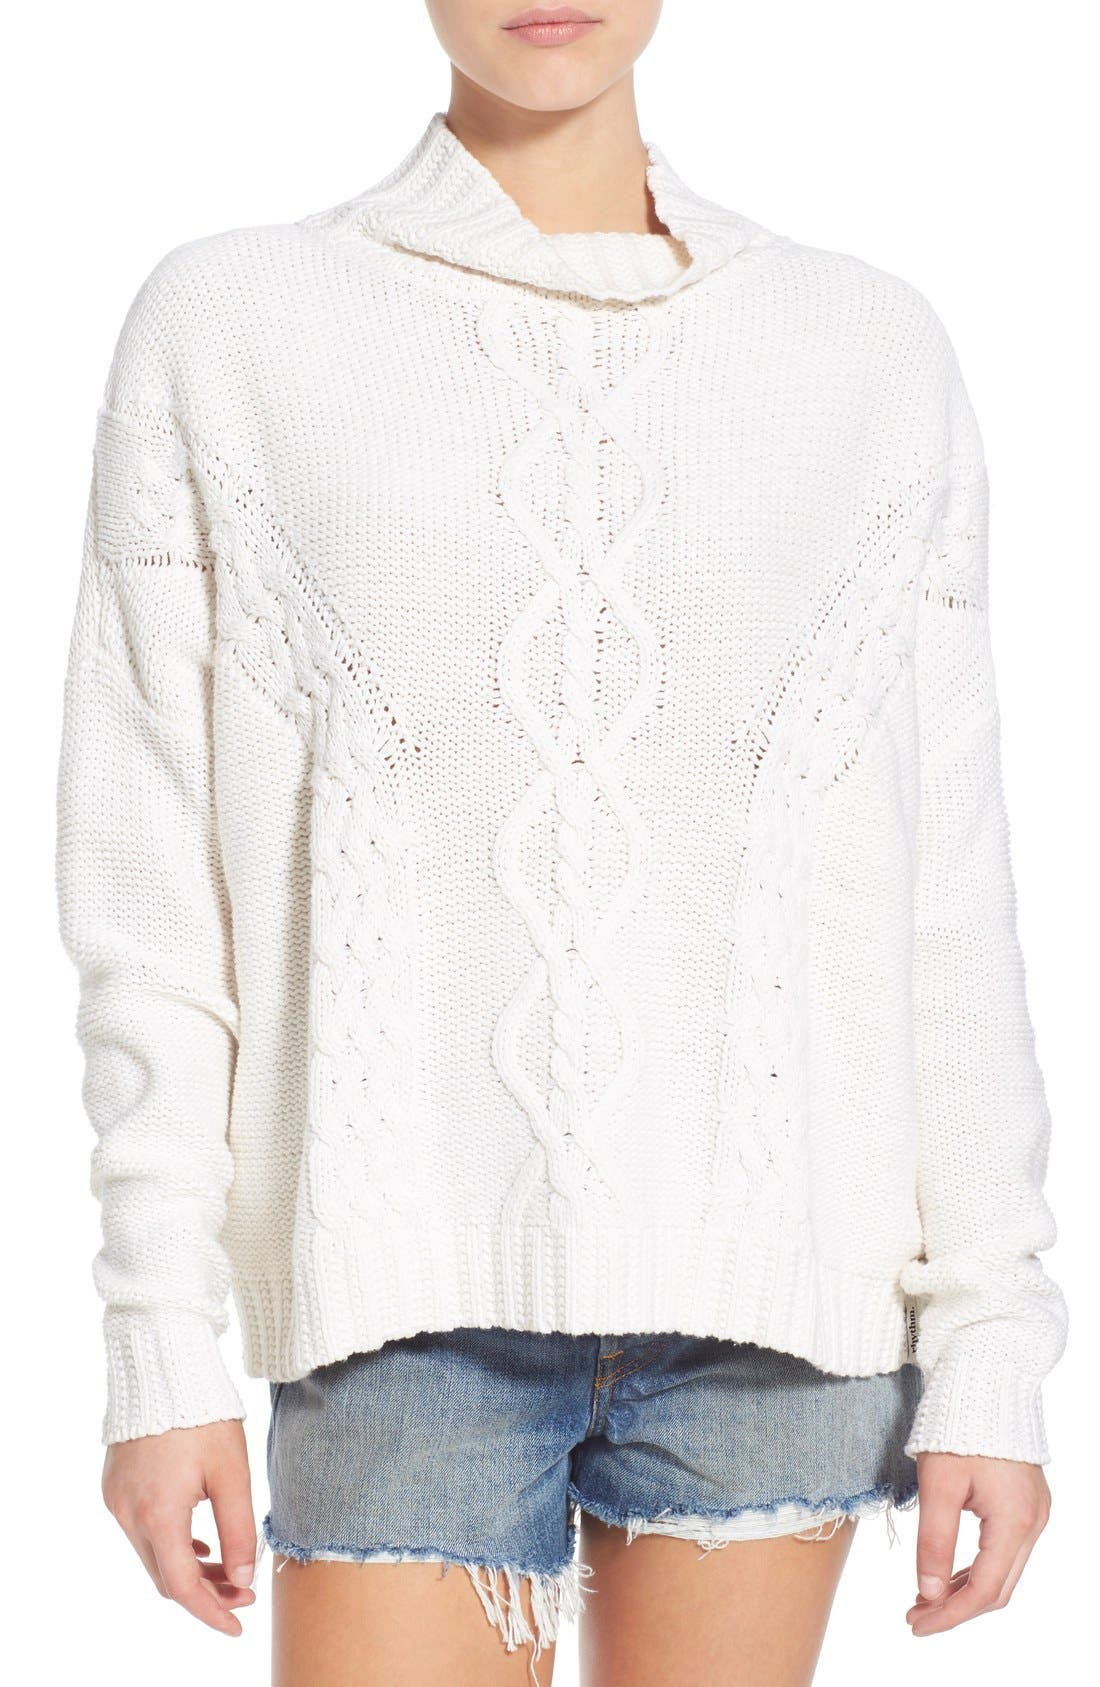 RHYTHM 'Yacht' Cable Knit Turtleneck Sweater, Main, color, 100